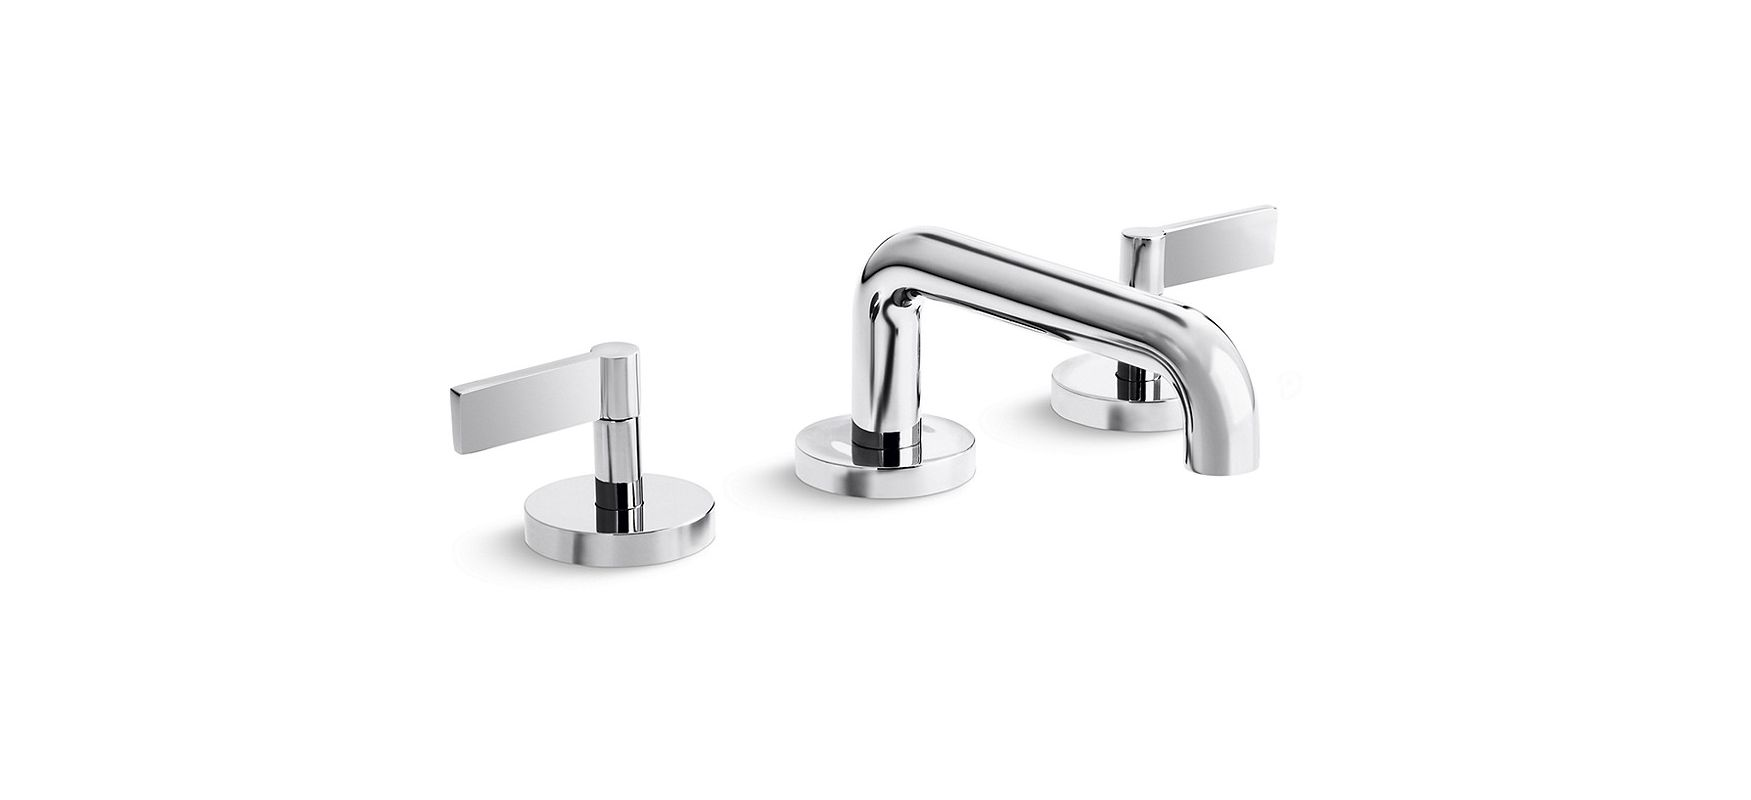 faucet com p24491 lv cp in polished chrome by kallista click to view larger image